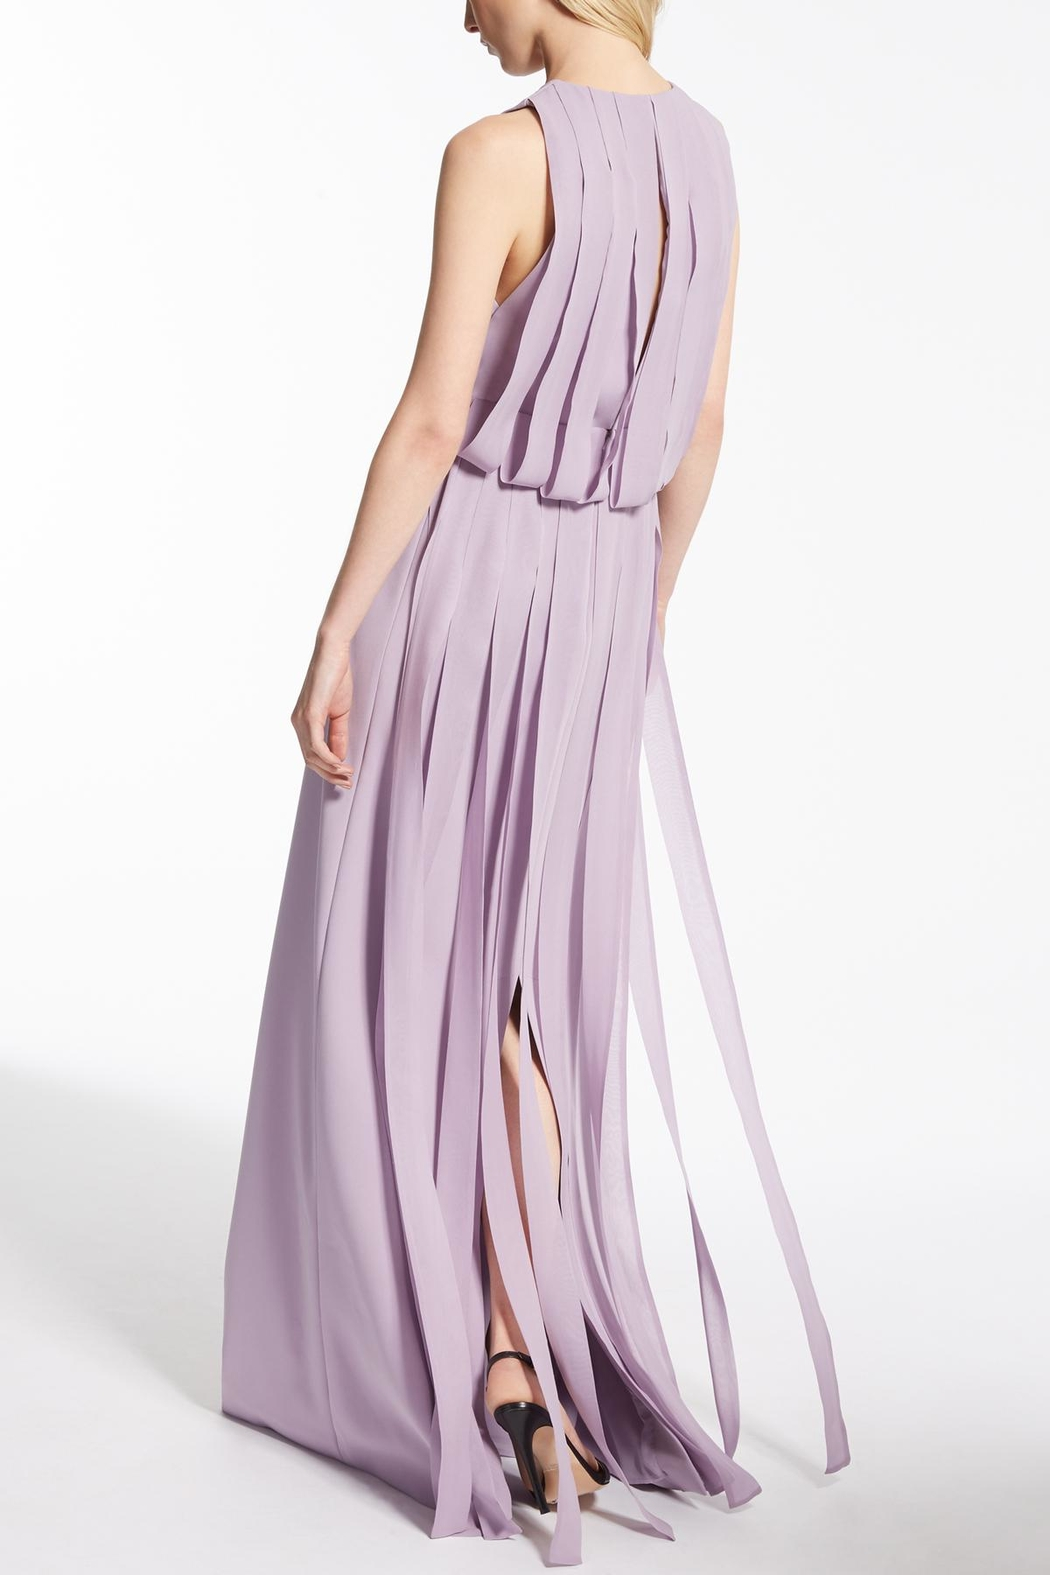 Max Mara Lilac Long Dress - Front Full Image